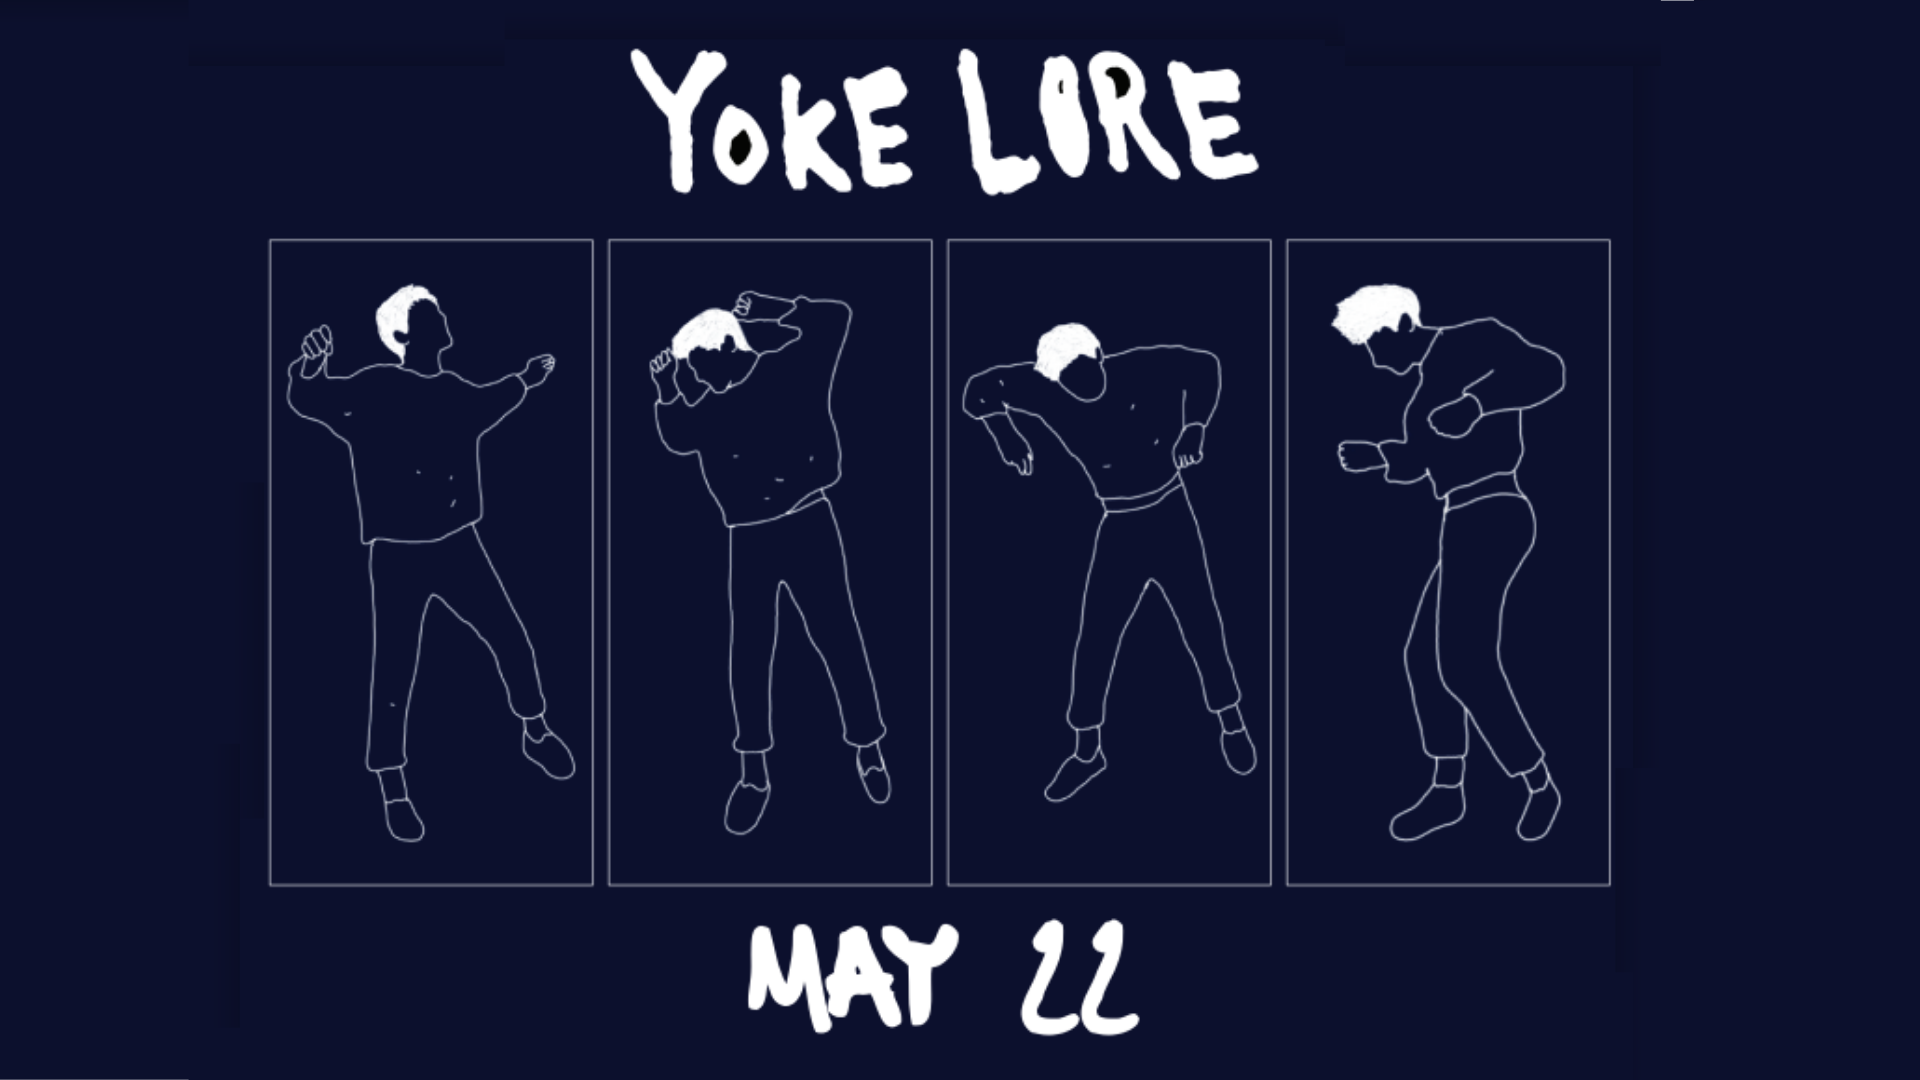 Yoke Lore at SLO Brew Rock